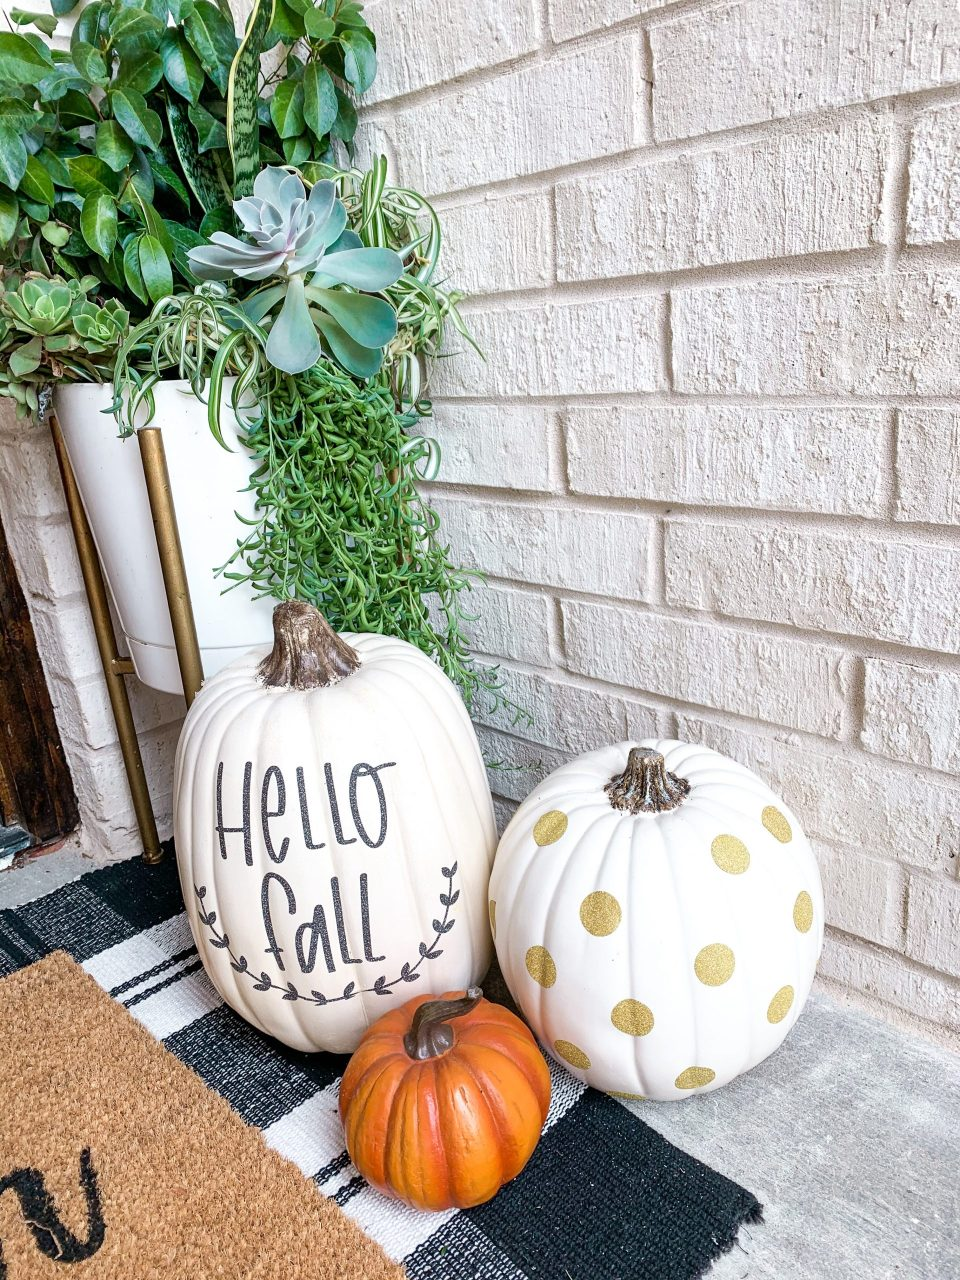 IMG 3965 scaled - 5 Easy Fall Crafts to make with Cricut